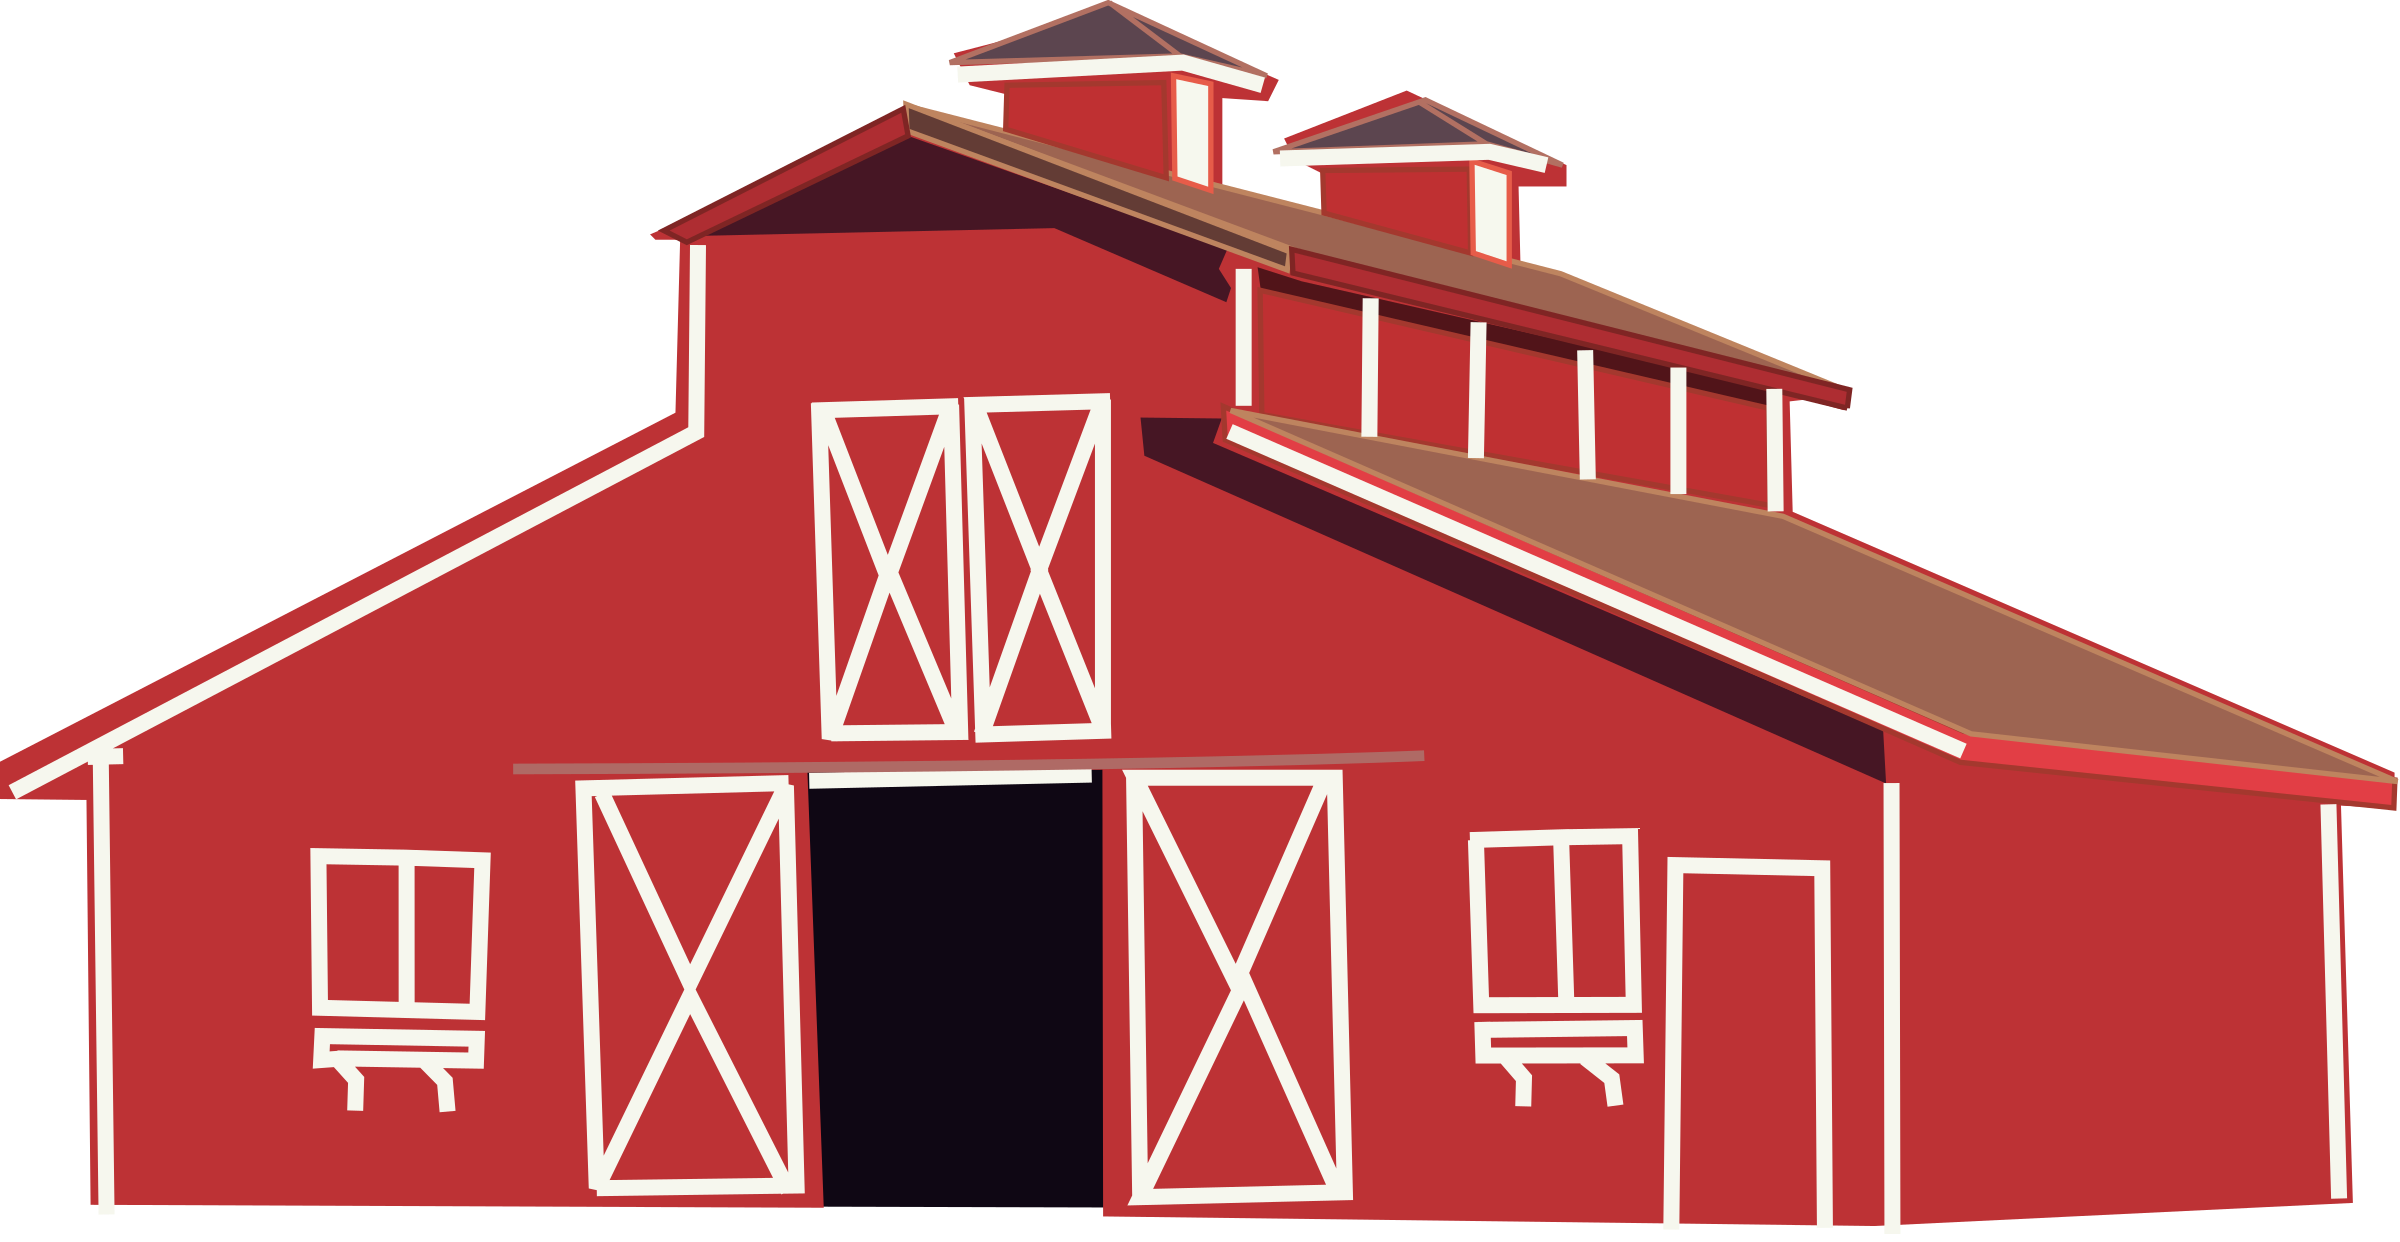 Red Barn Drawing at GetDrawings.com | Free for personal use Red Barn ...